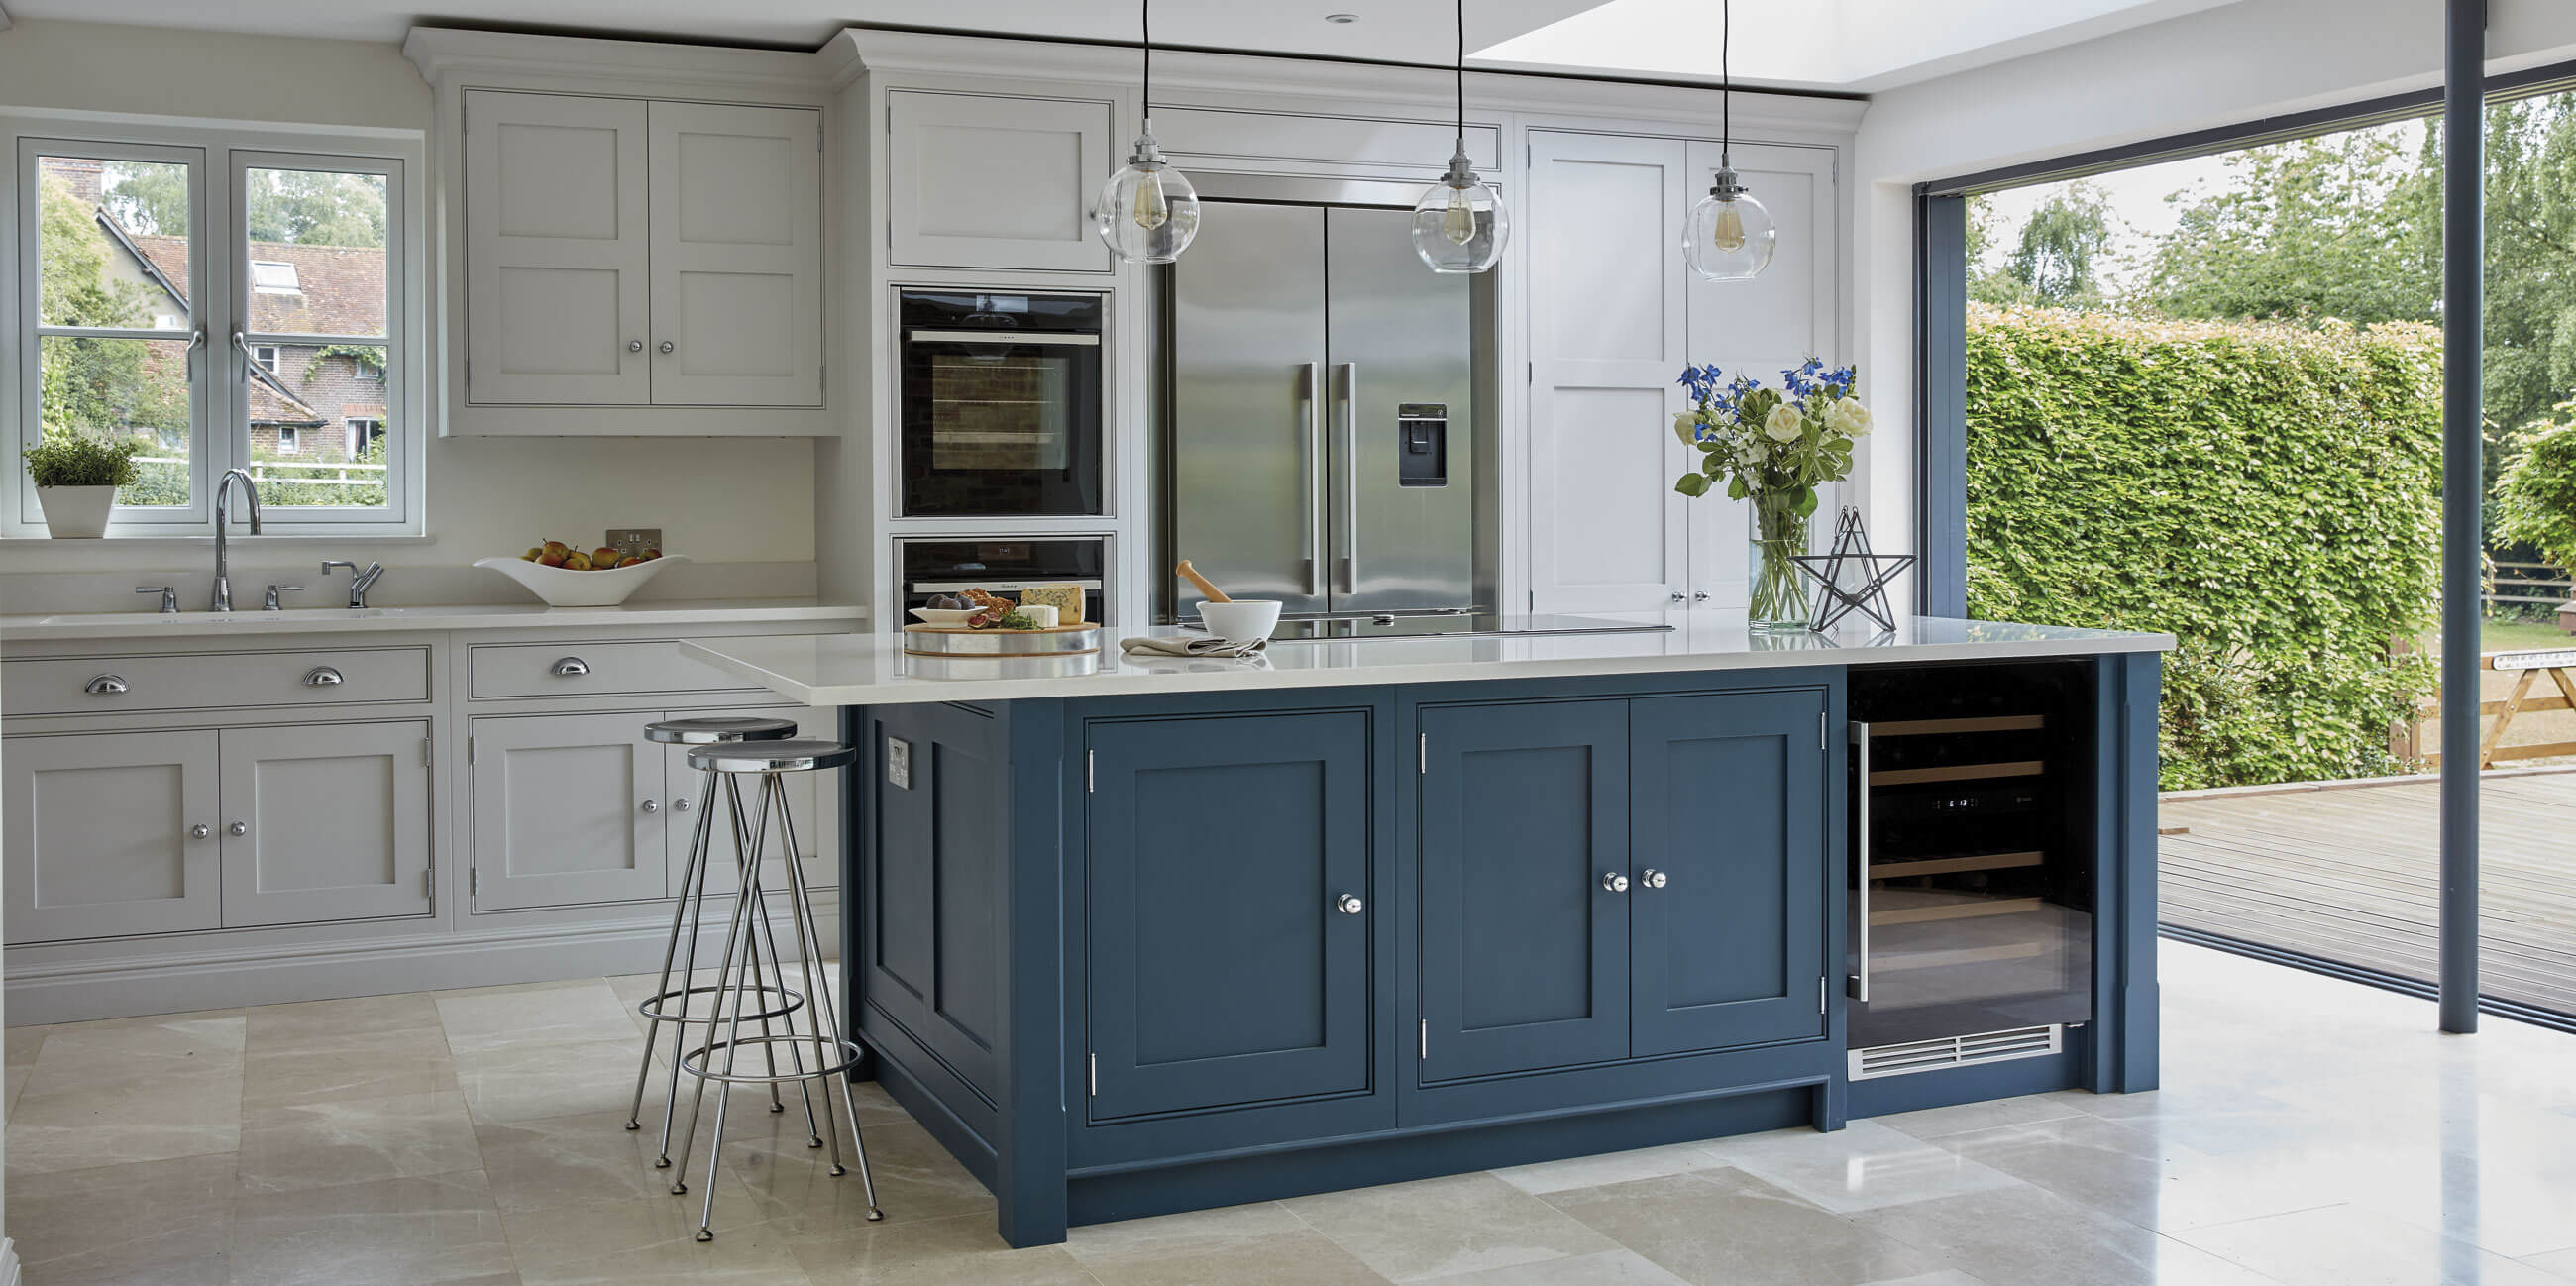 Bespoke Kitchens Luxury Kitchen Designers